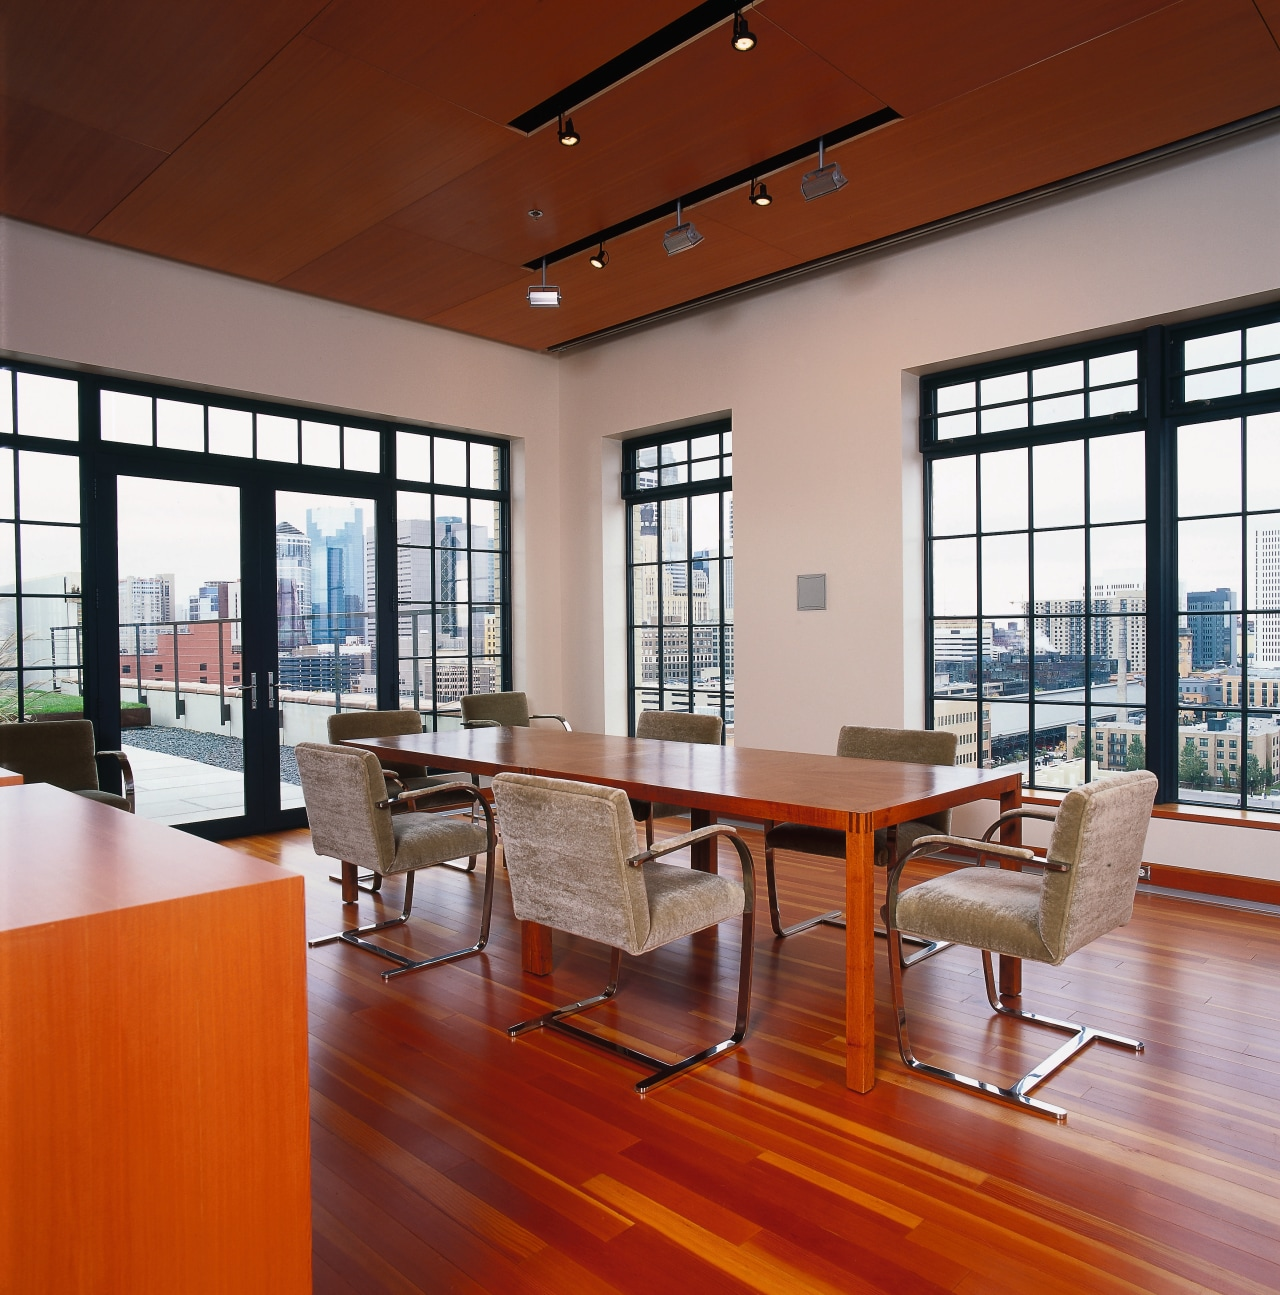 View of the dining room, wooden flooring, ceiling architecture, ceiling, chair, daylighting, floor, flooring, furniture, hardwood, interior design, living room, loft, table, window, wood, wood flooring, red, gray